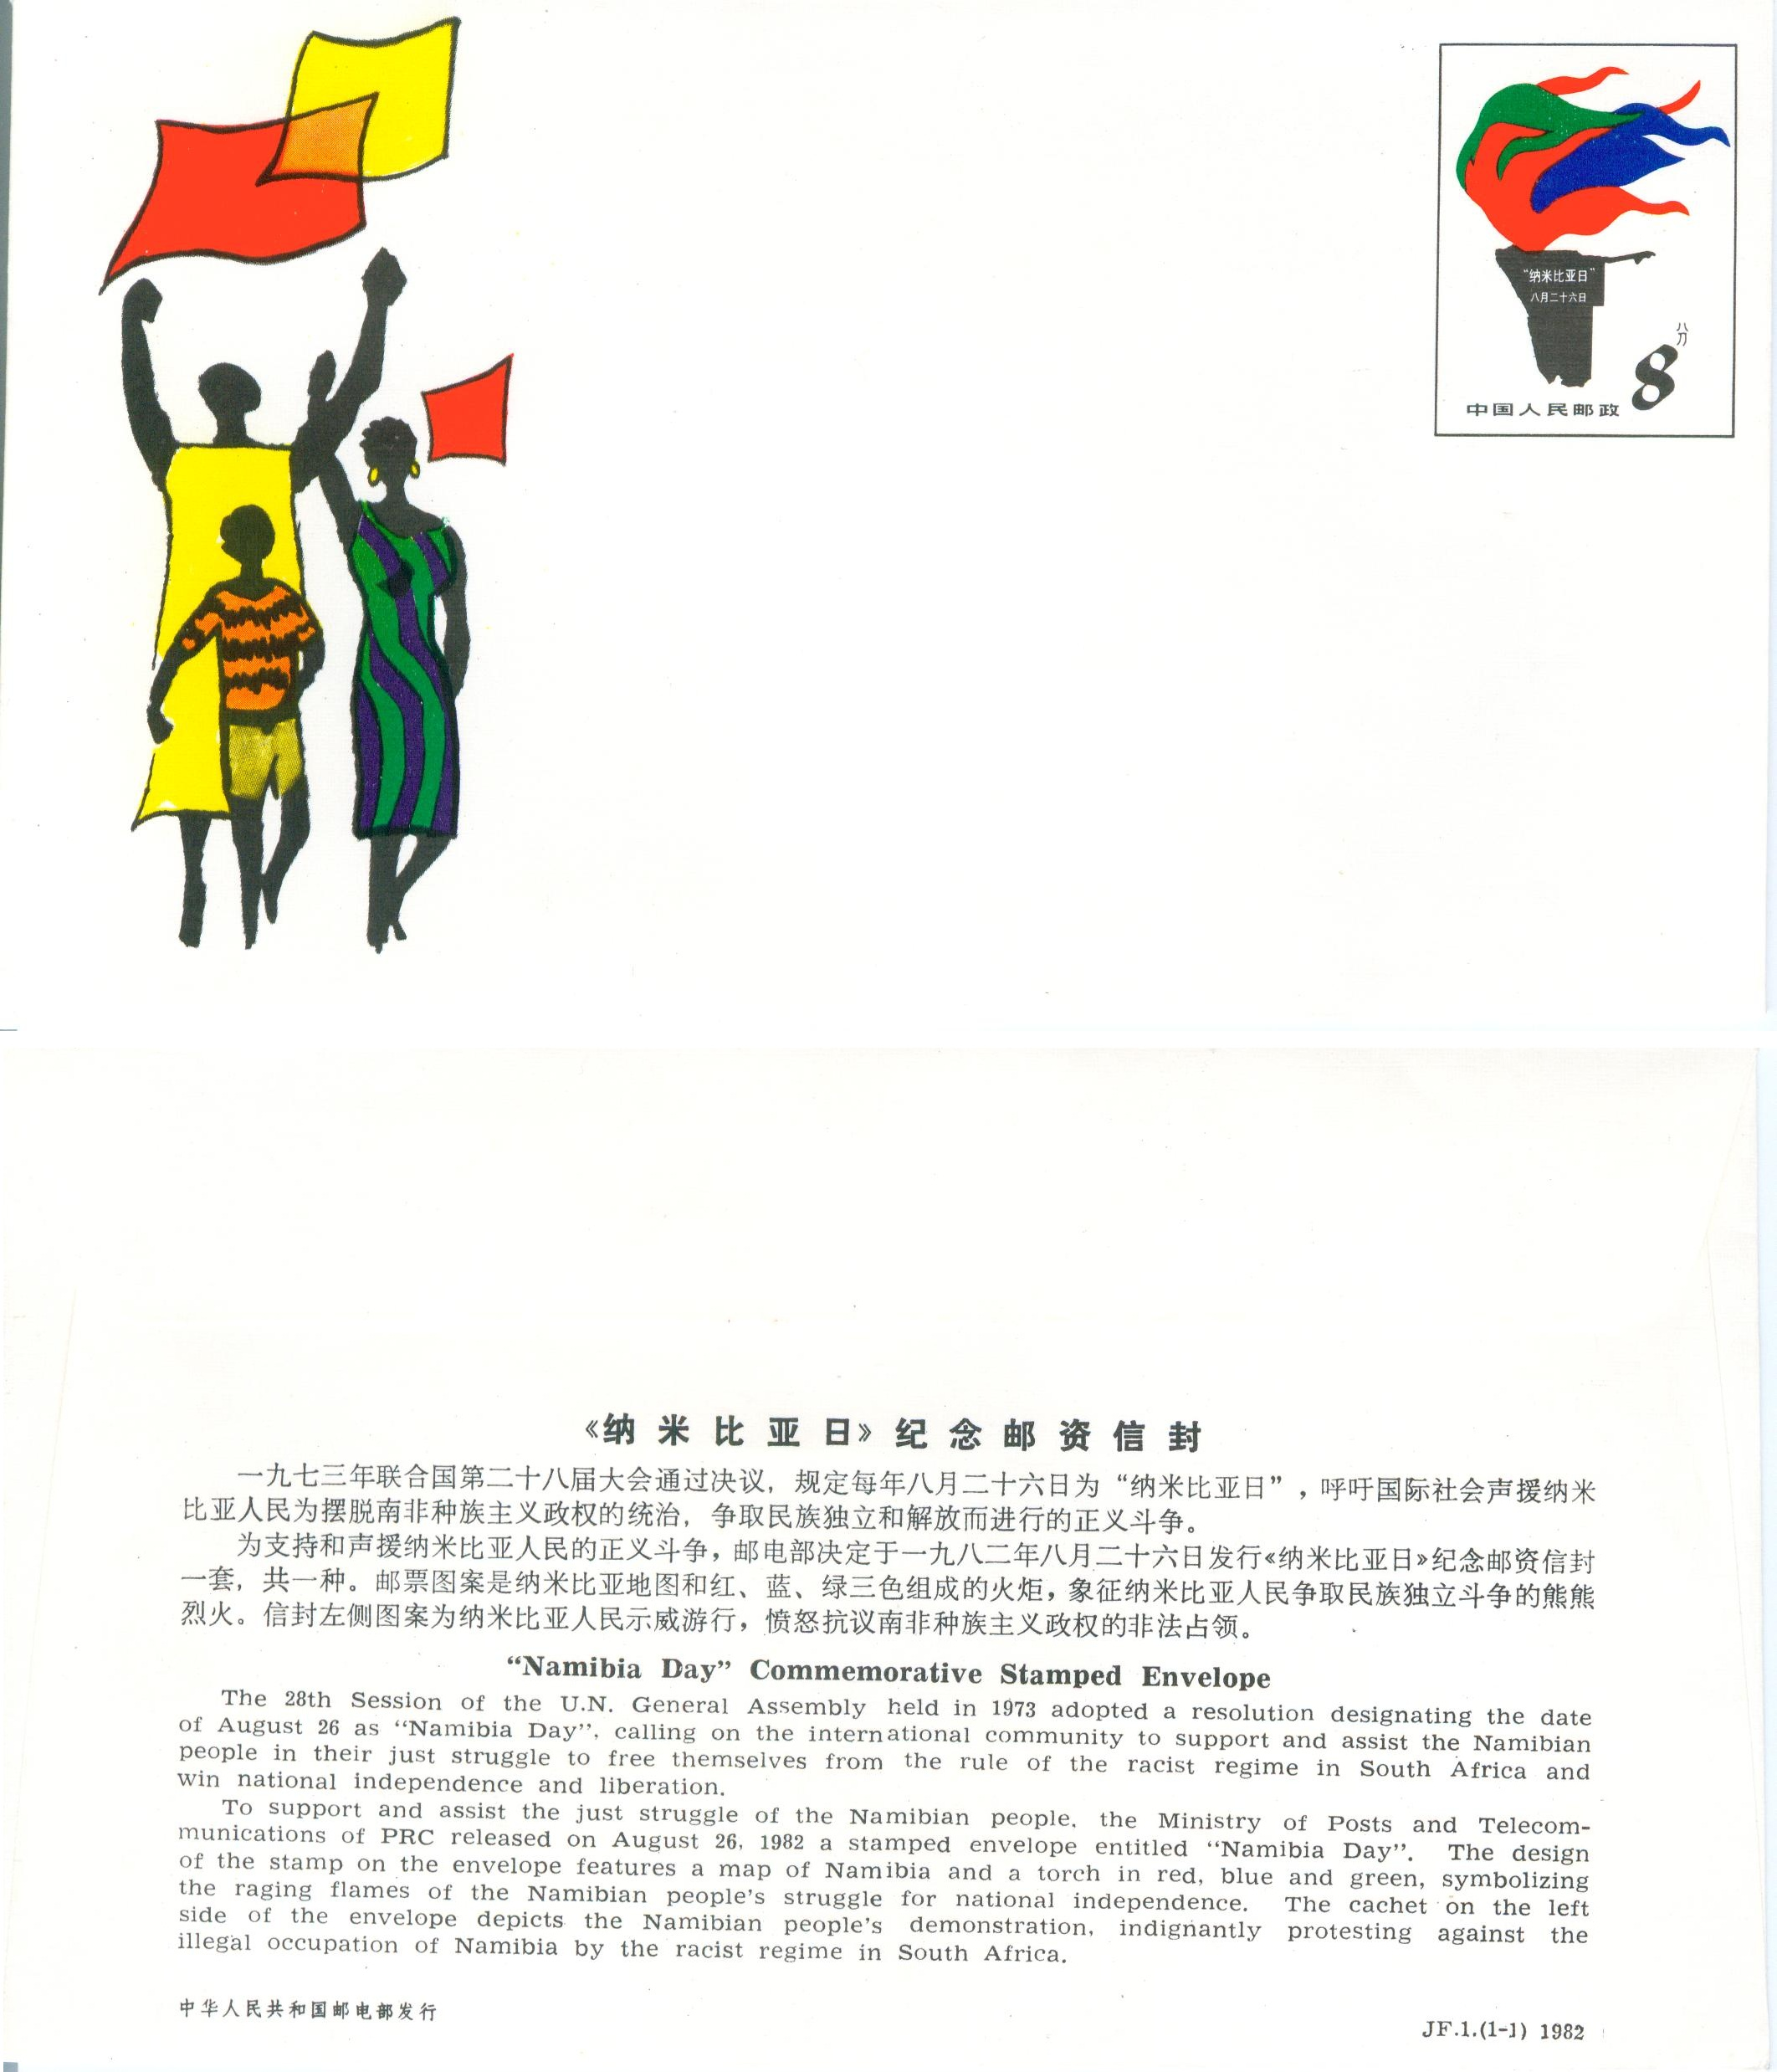 JF1, Namibia Day 1982 (P.R.China First Postal Envelope)